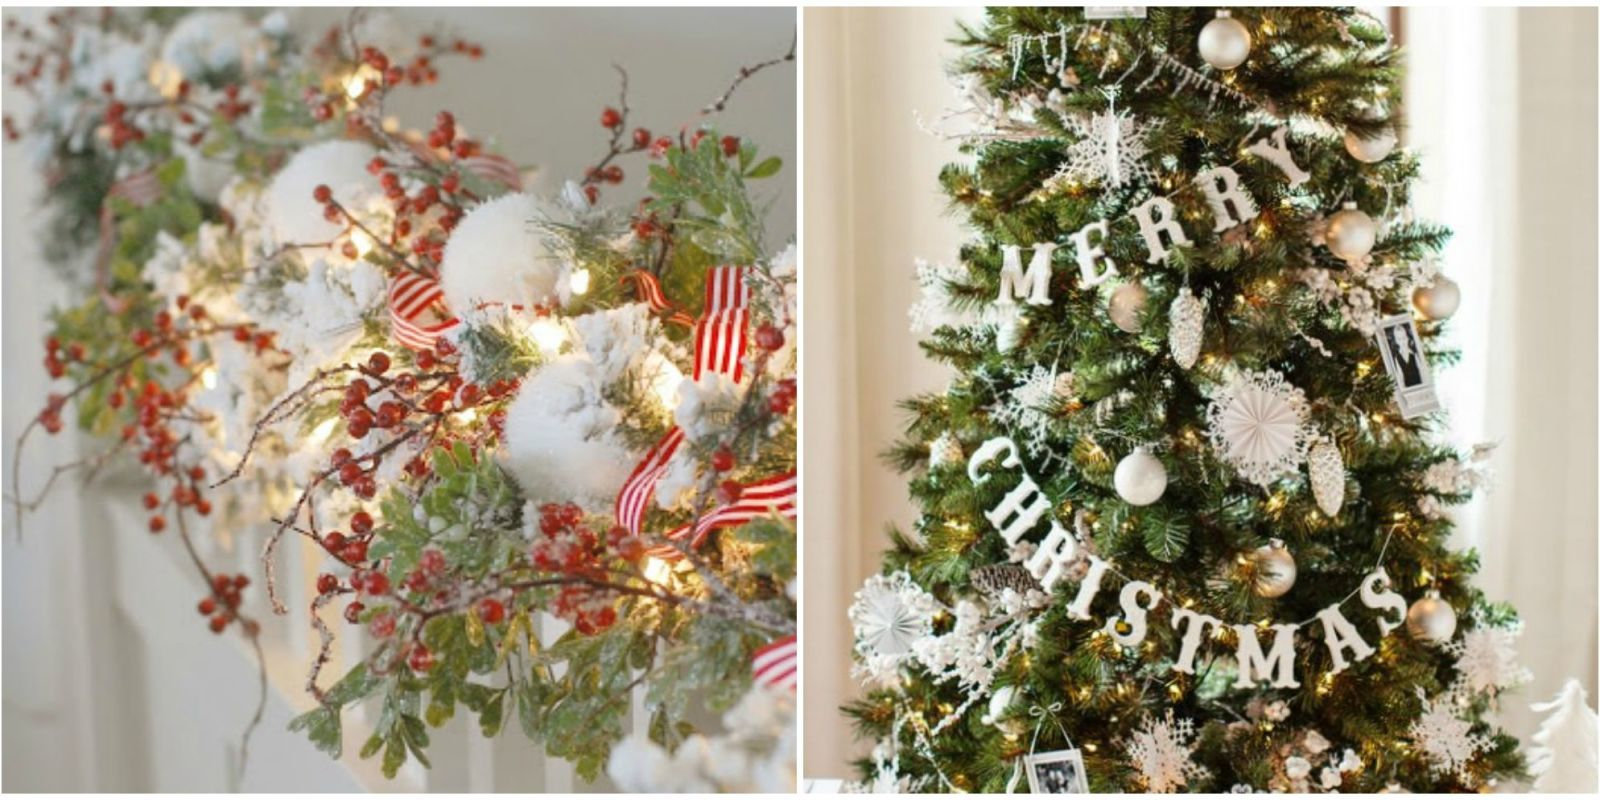 27 Christmas Garland Ideas - Decorating with Holiday Garlands